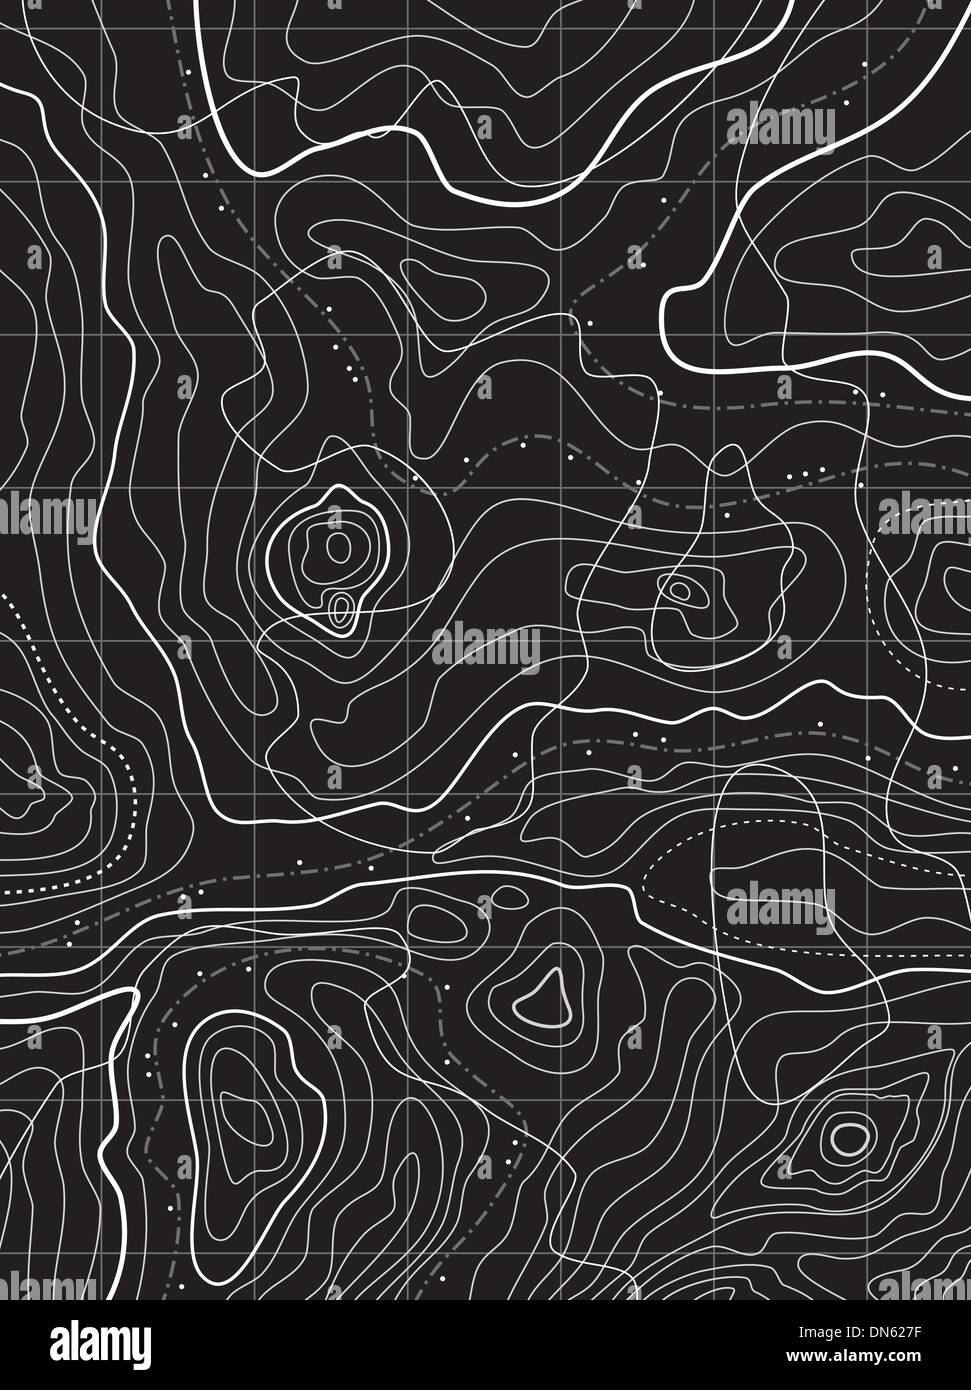 vector abstract topographical map - Stock Image